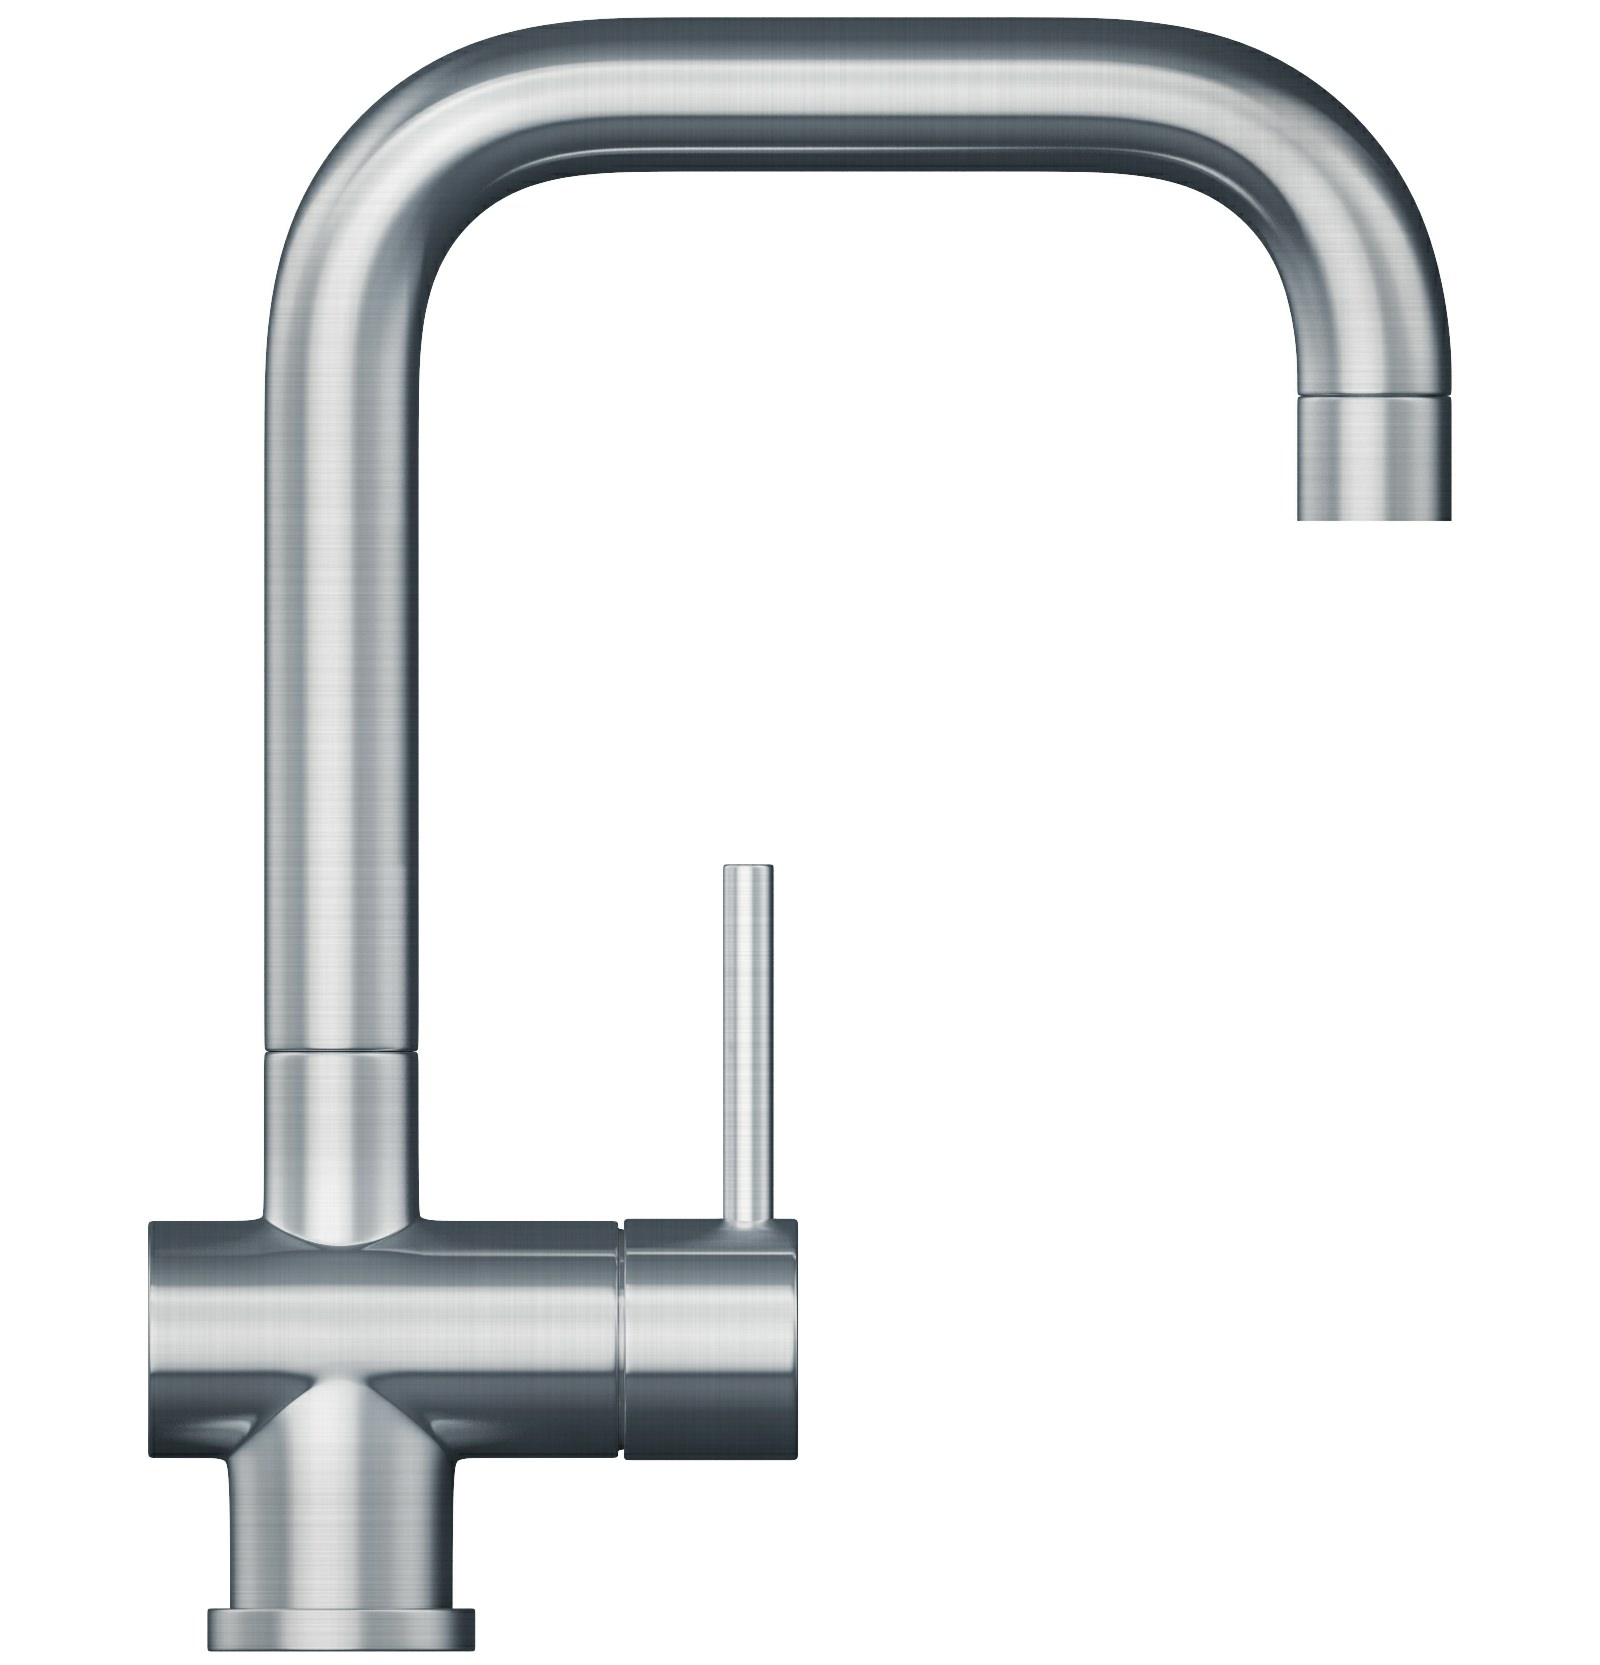 Franke Stainless Steel Sink : Franke Nyon Stainless Steel Kitchen Sink Mixer Tap